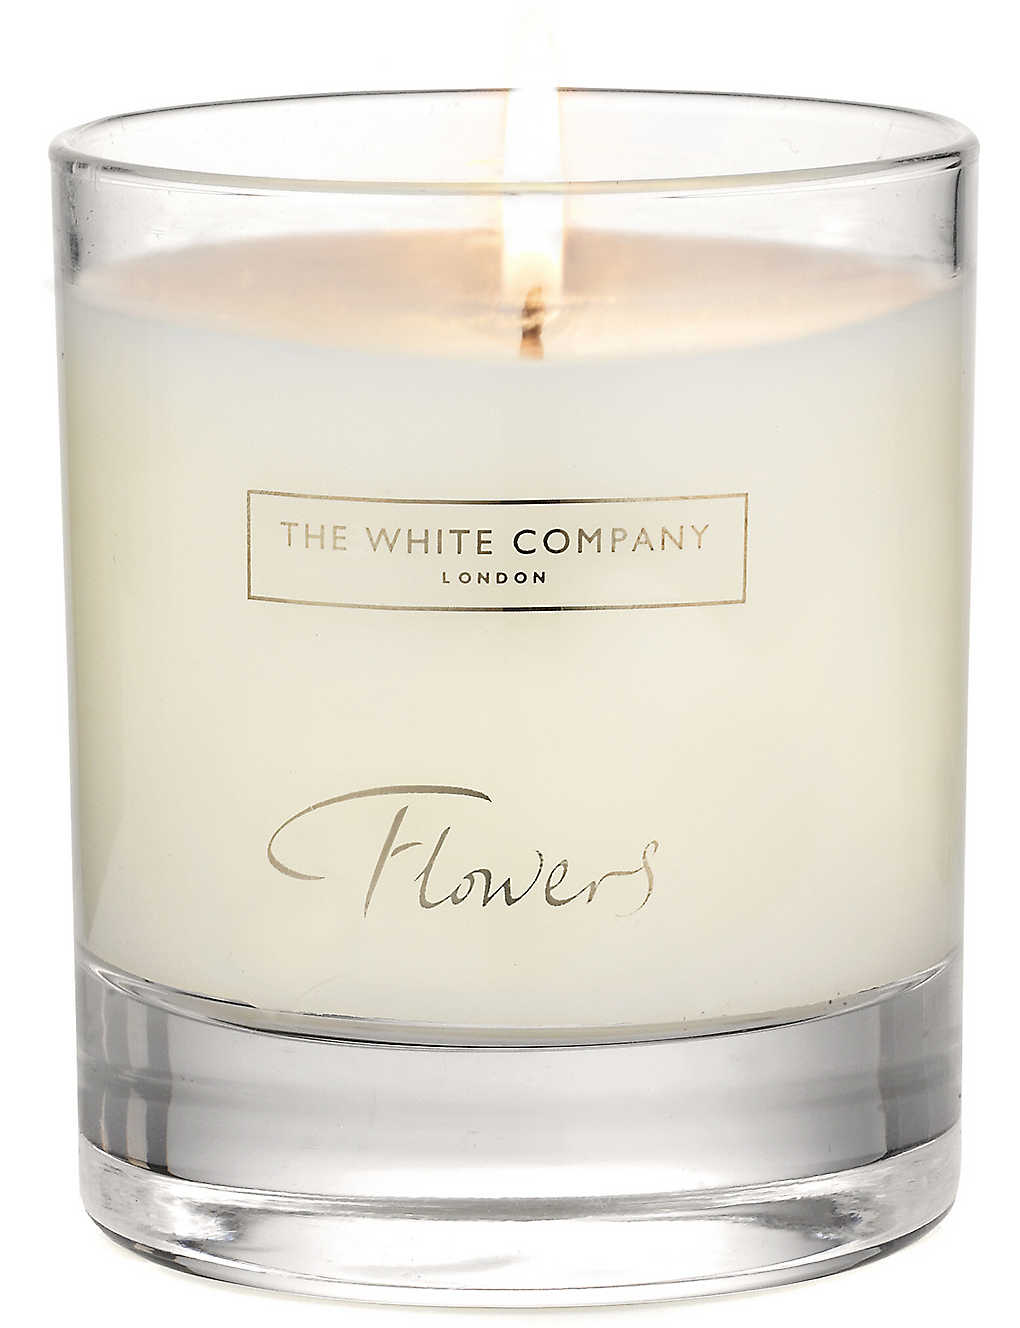 The white company flowers scented candle 140g selfridges no recent searches mightylinksfo